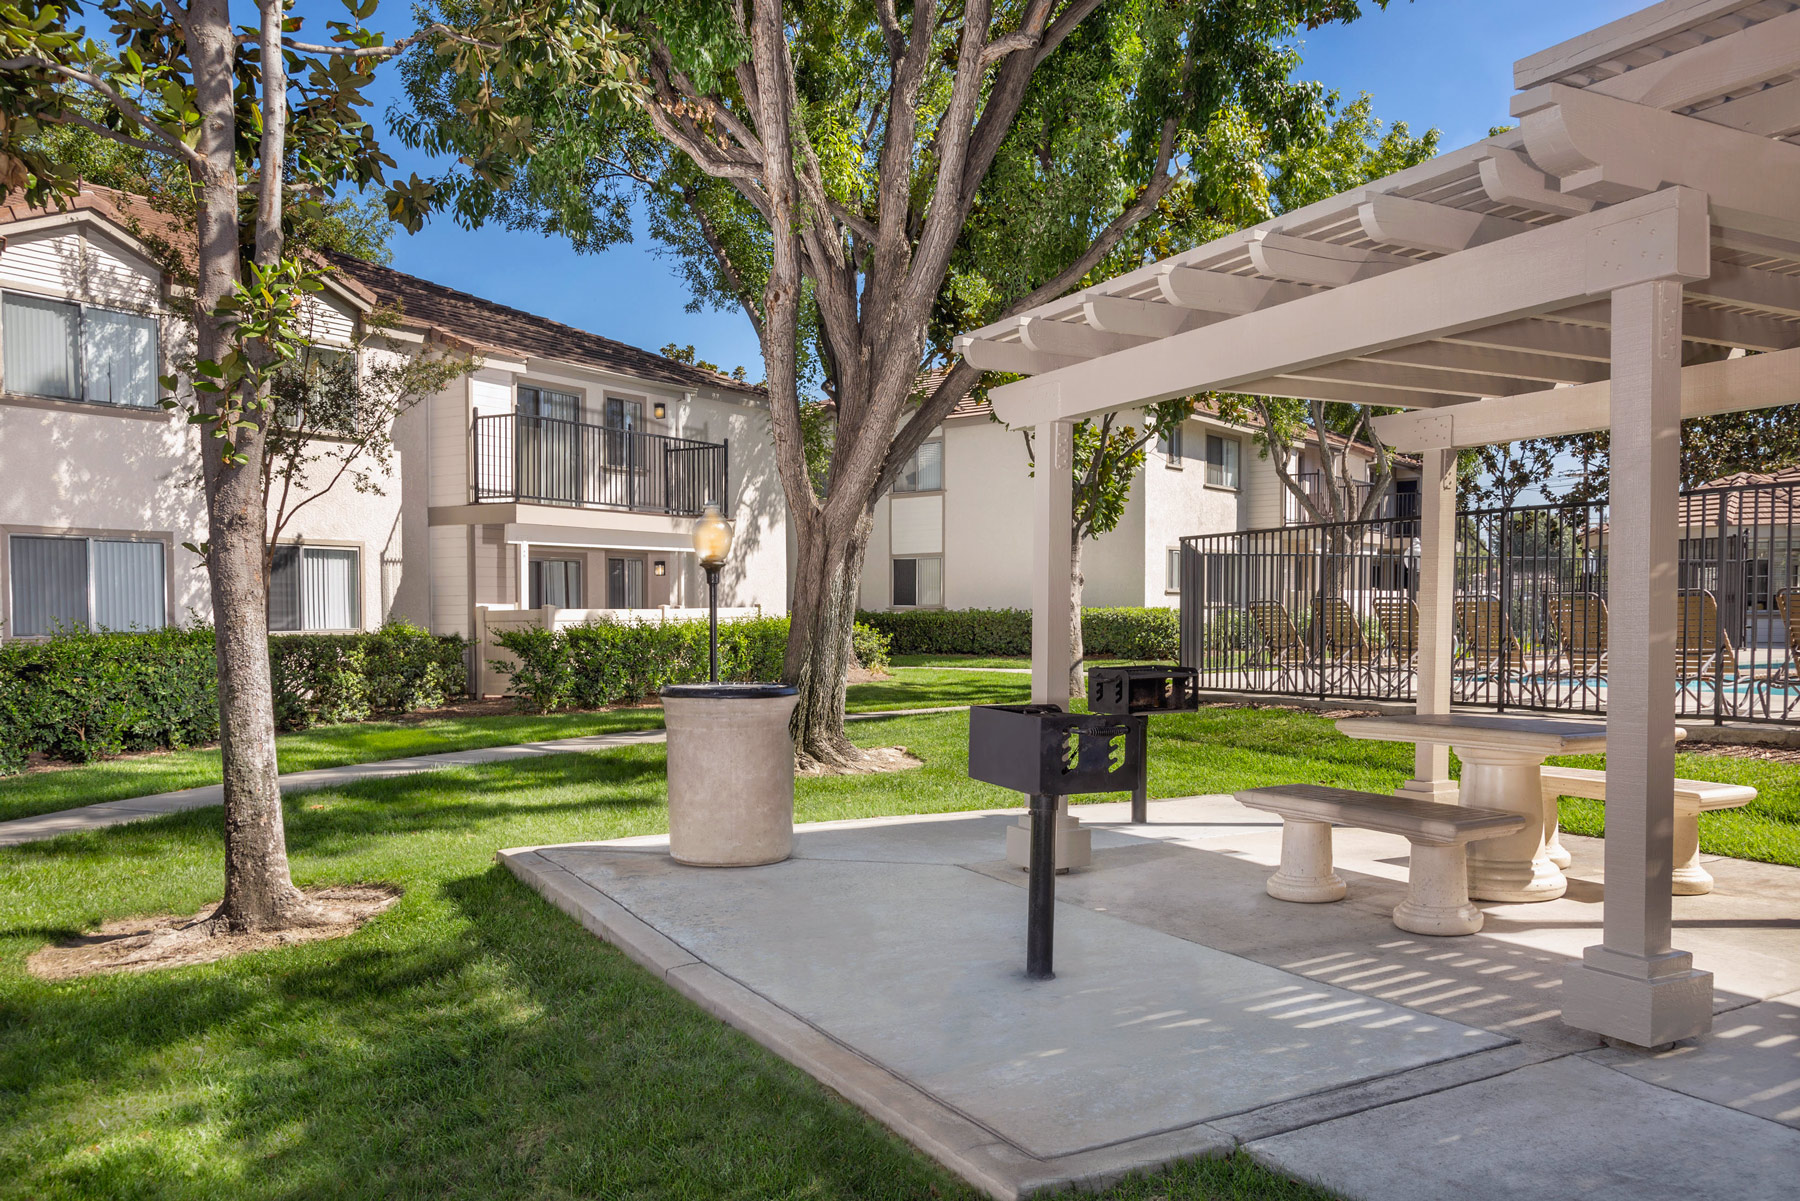 More On Freeways To Parks >> Somerset Apartments | Apartments in Redlands